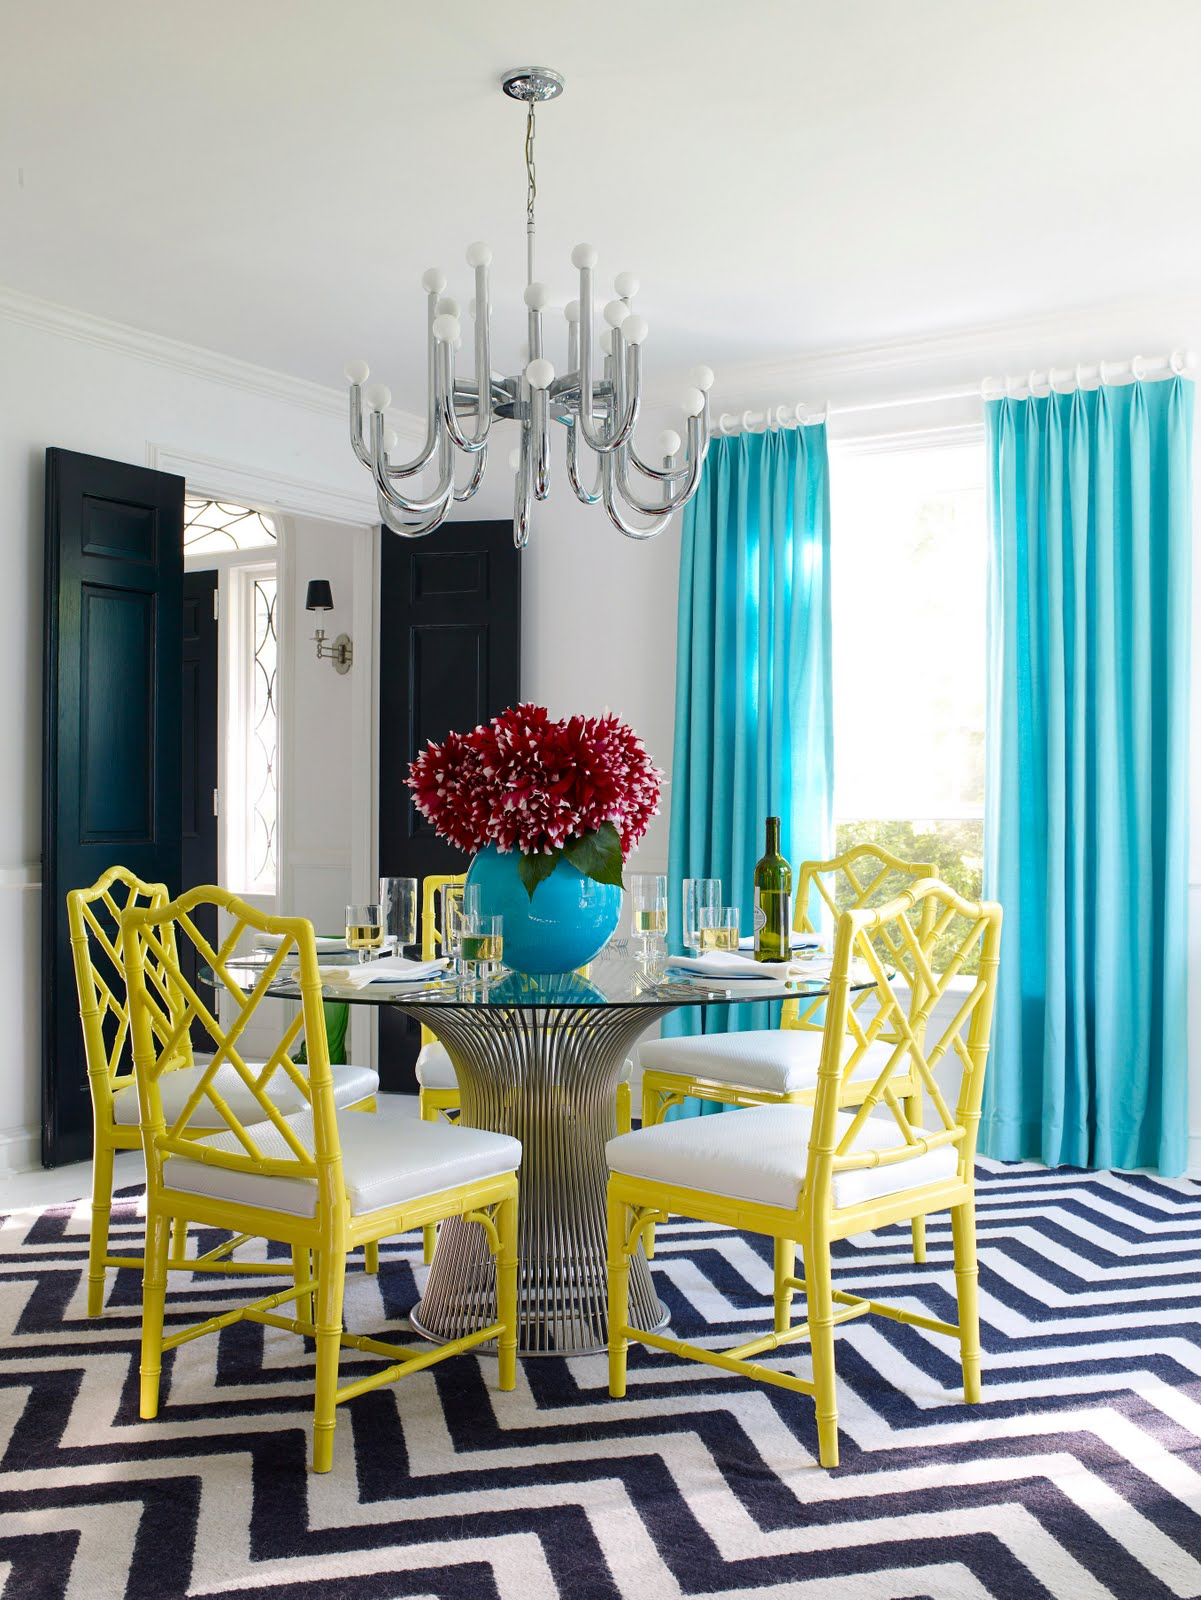 Dining table designs 2016 - Breakfast At Tiffany S